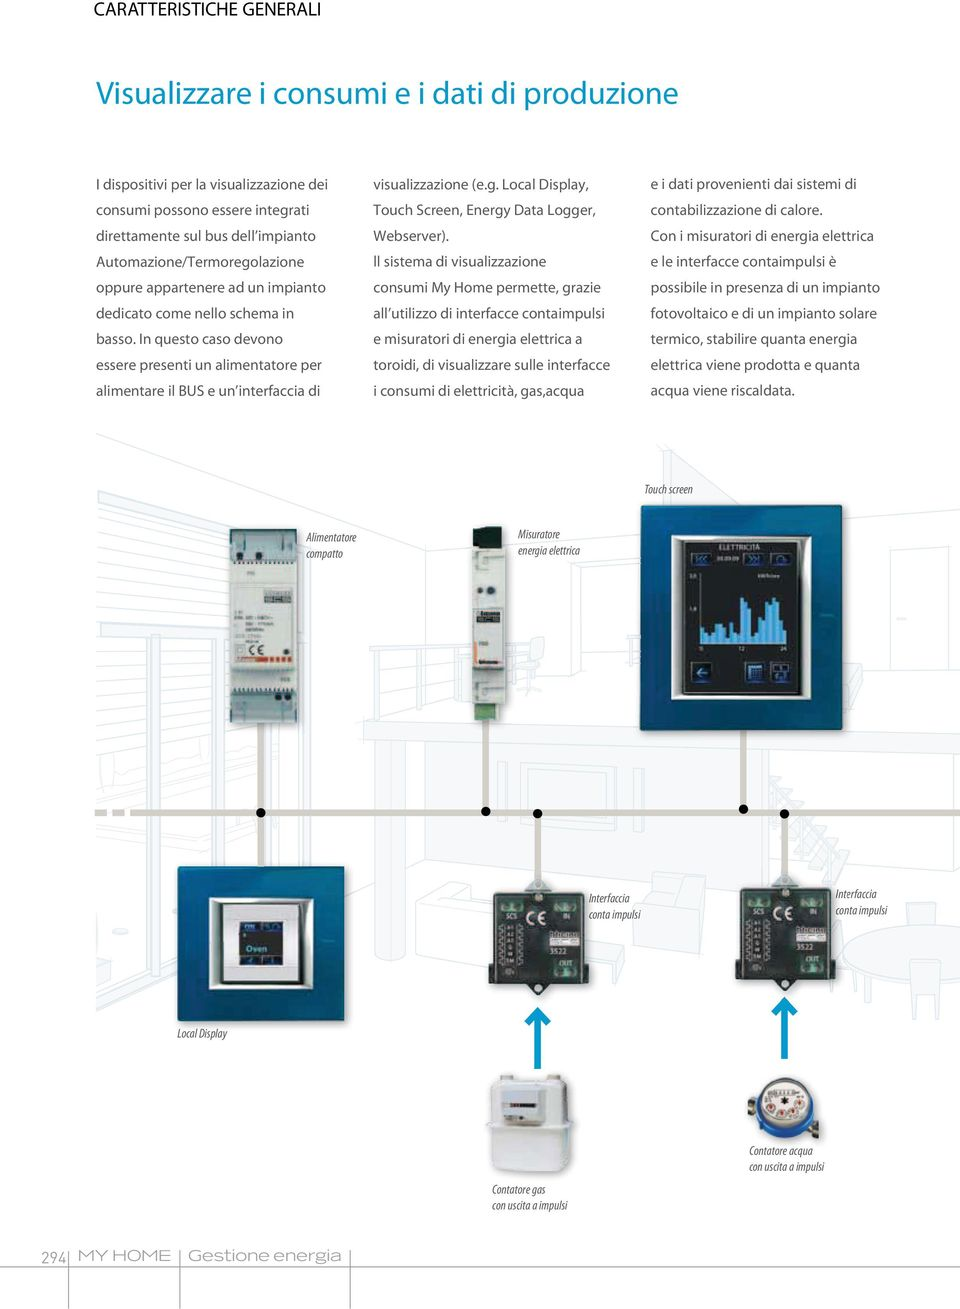 In questo caso devono essere presenti un alimentatore per alimentare il BUS e un interfaccia di visualizzazione (e.g. Local Display, Touch Screen, Energy Data Logger, Webserver).